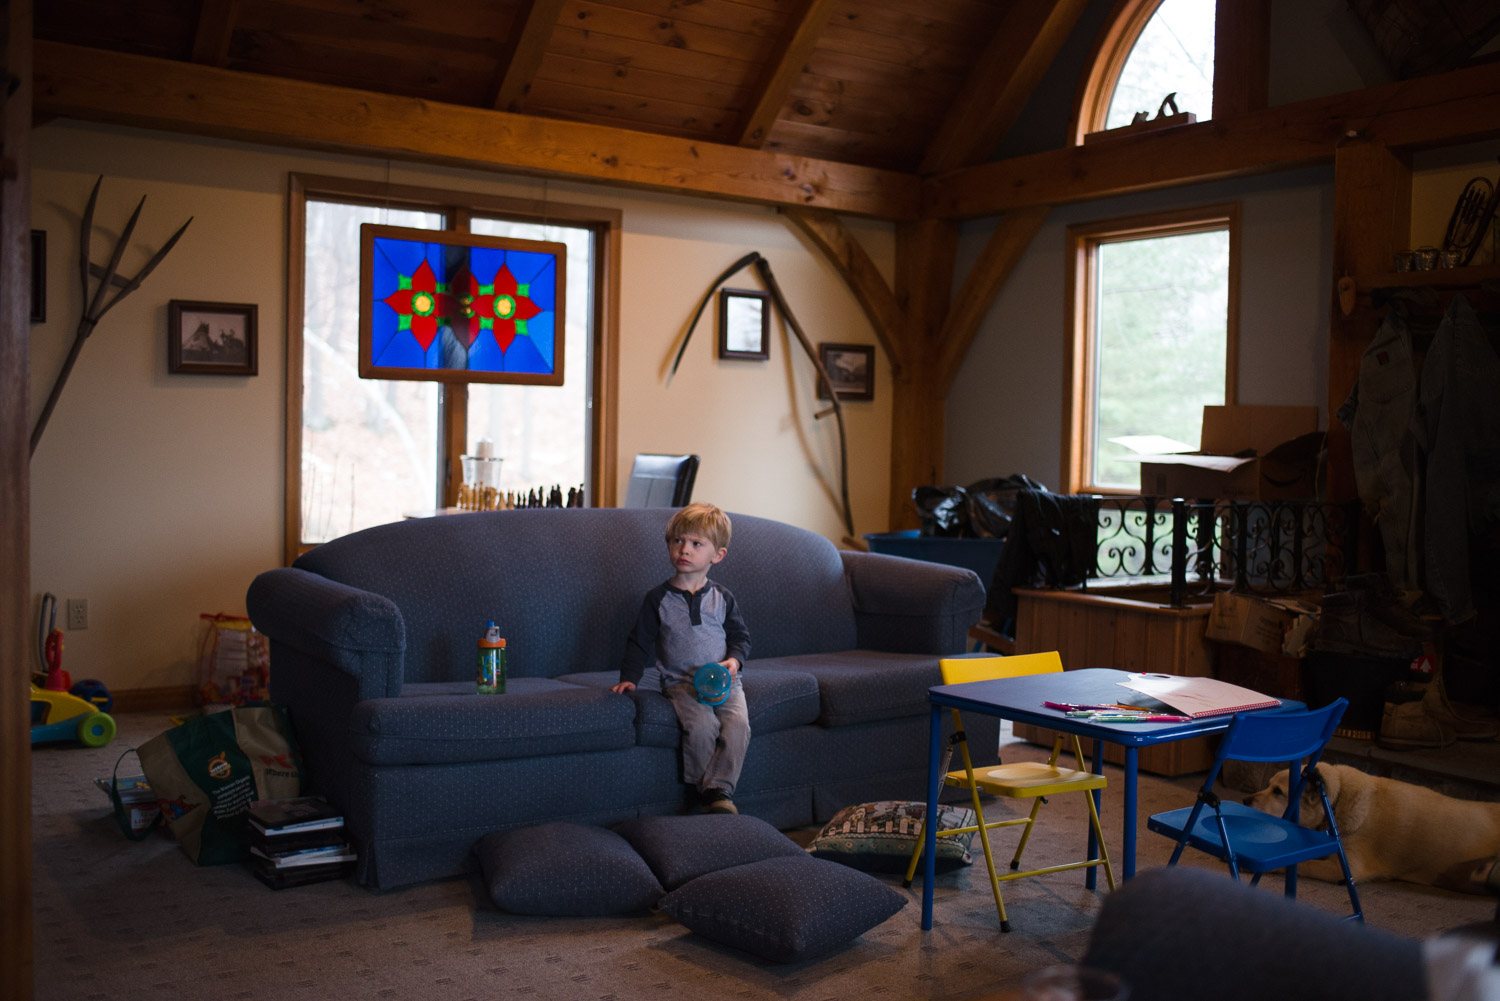 Little boy sitting on couch watching TV.